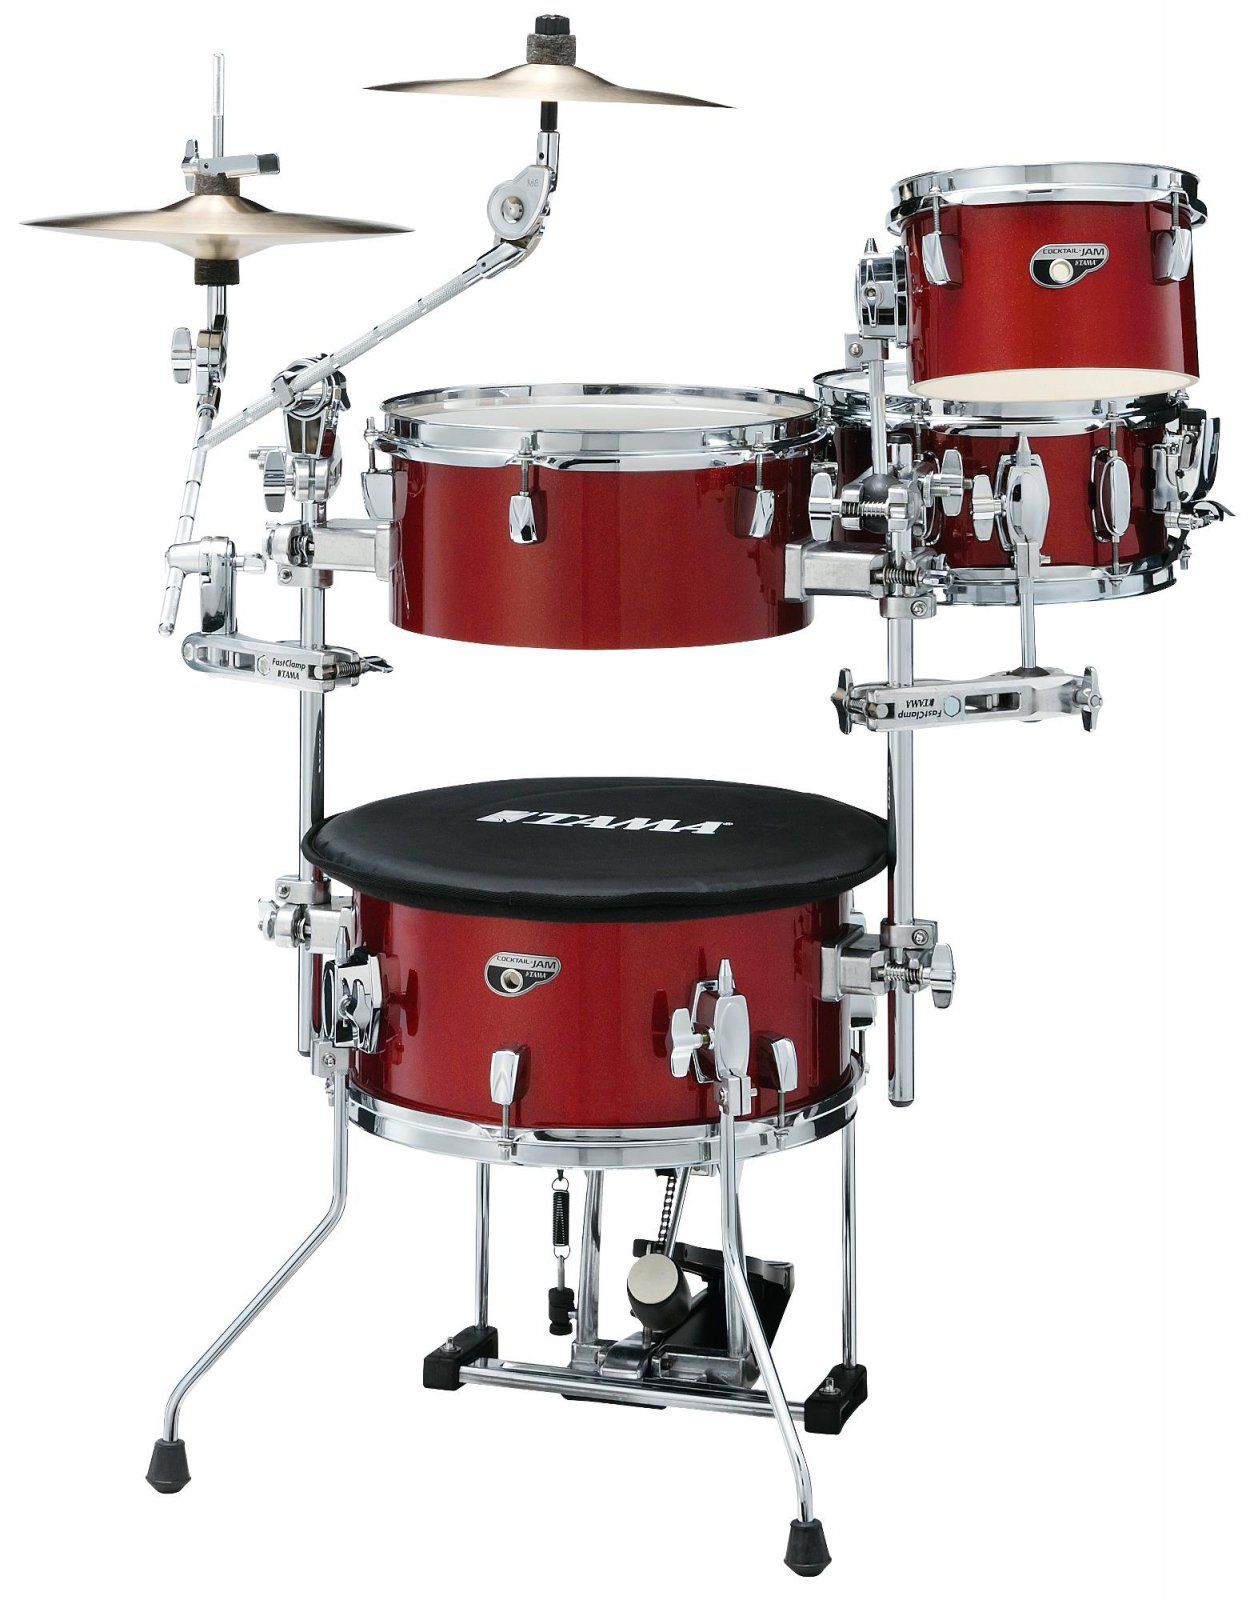 Tama Silverstar Cocktail Jam Mini Kit Candy Apple Mist